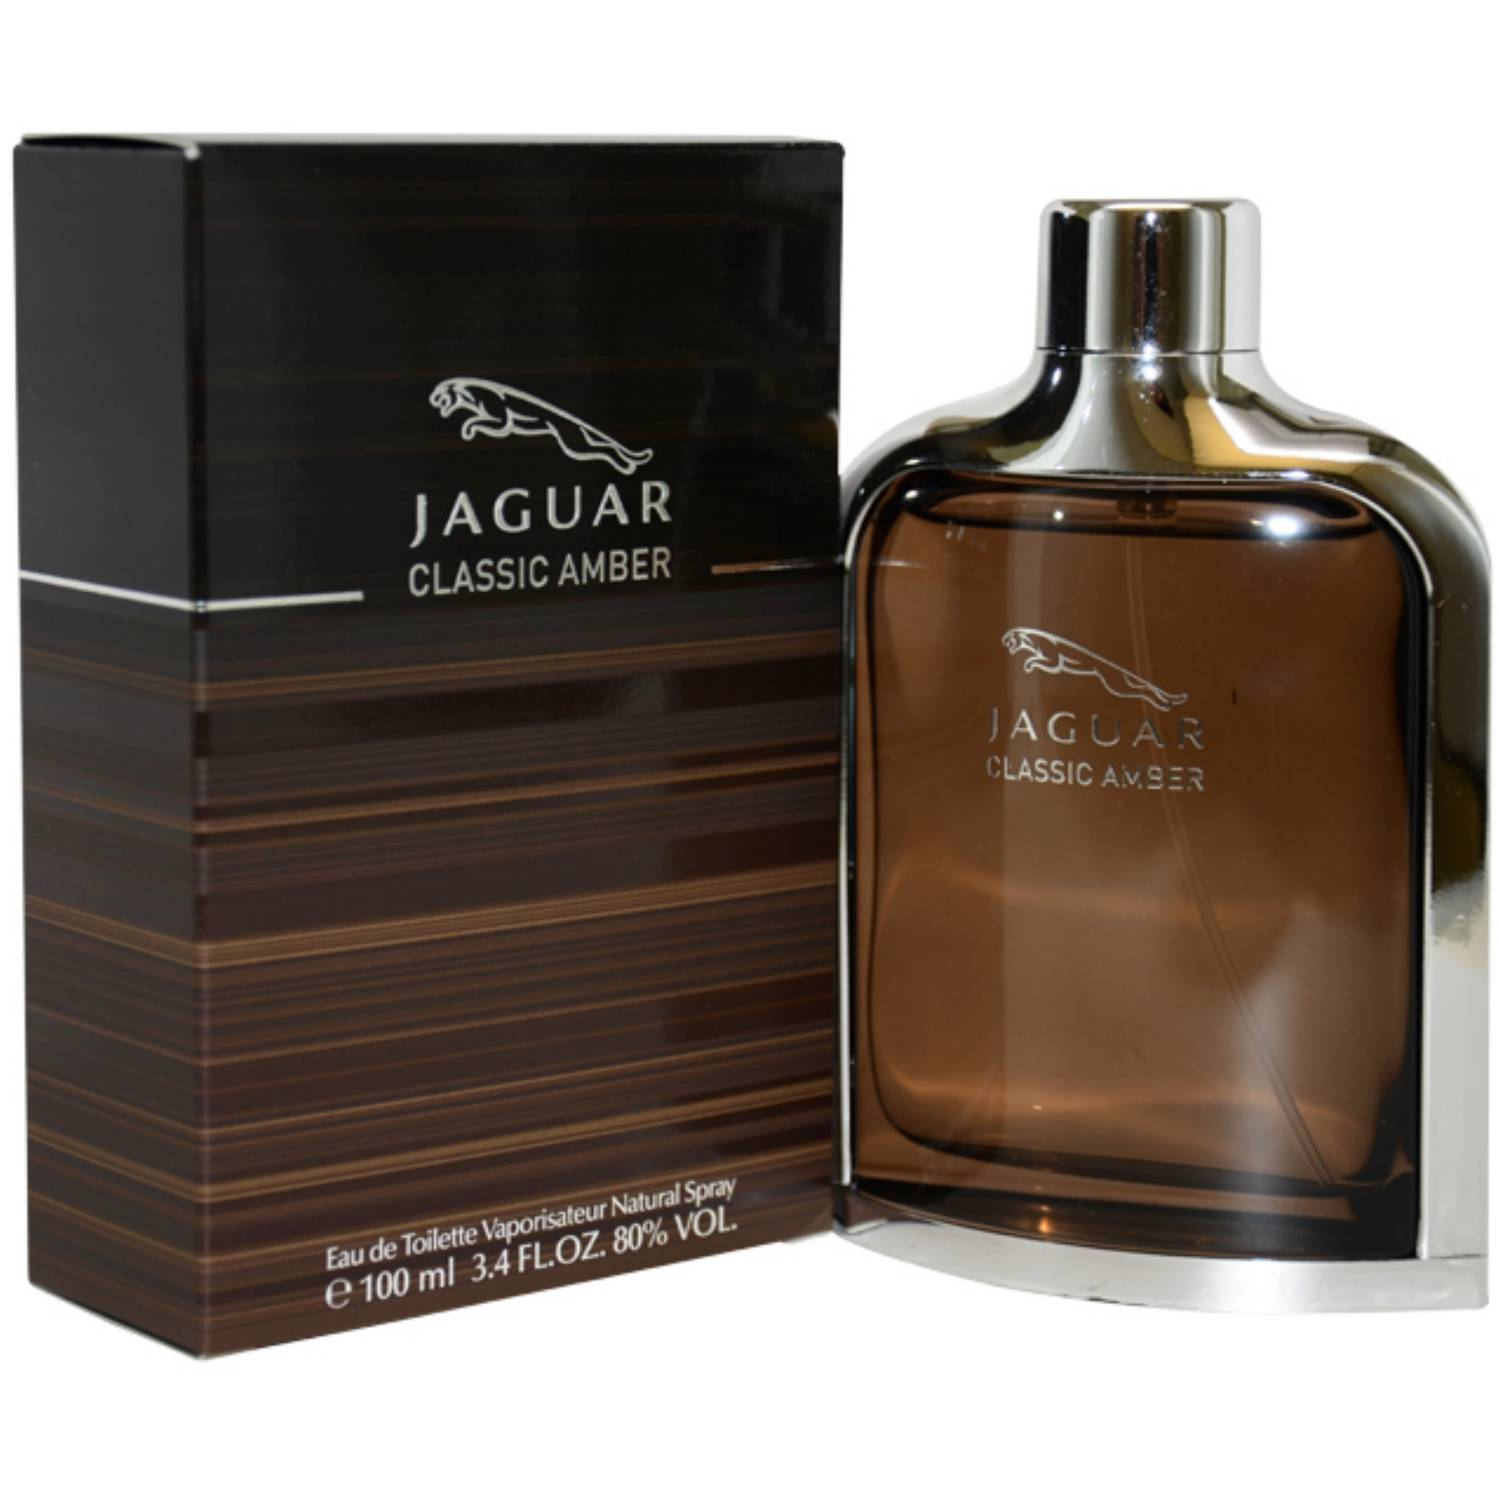 Jaguar Jaguar Classic Amber EDT Spray, 3.4 fl oz